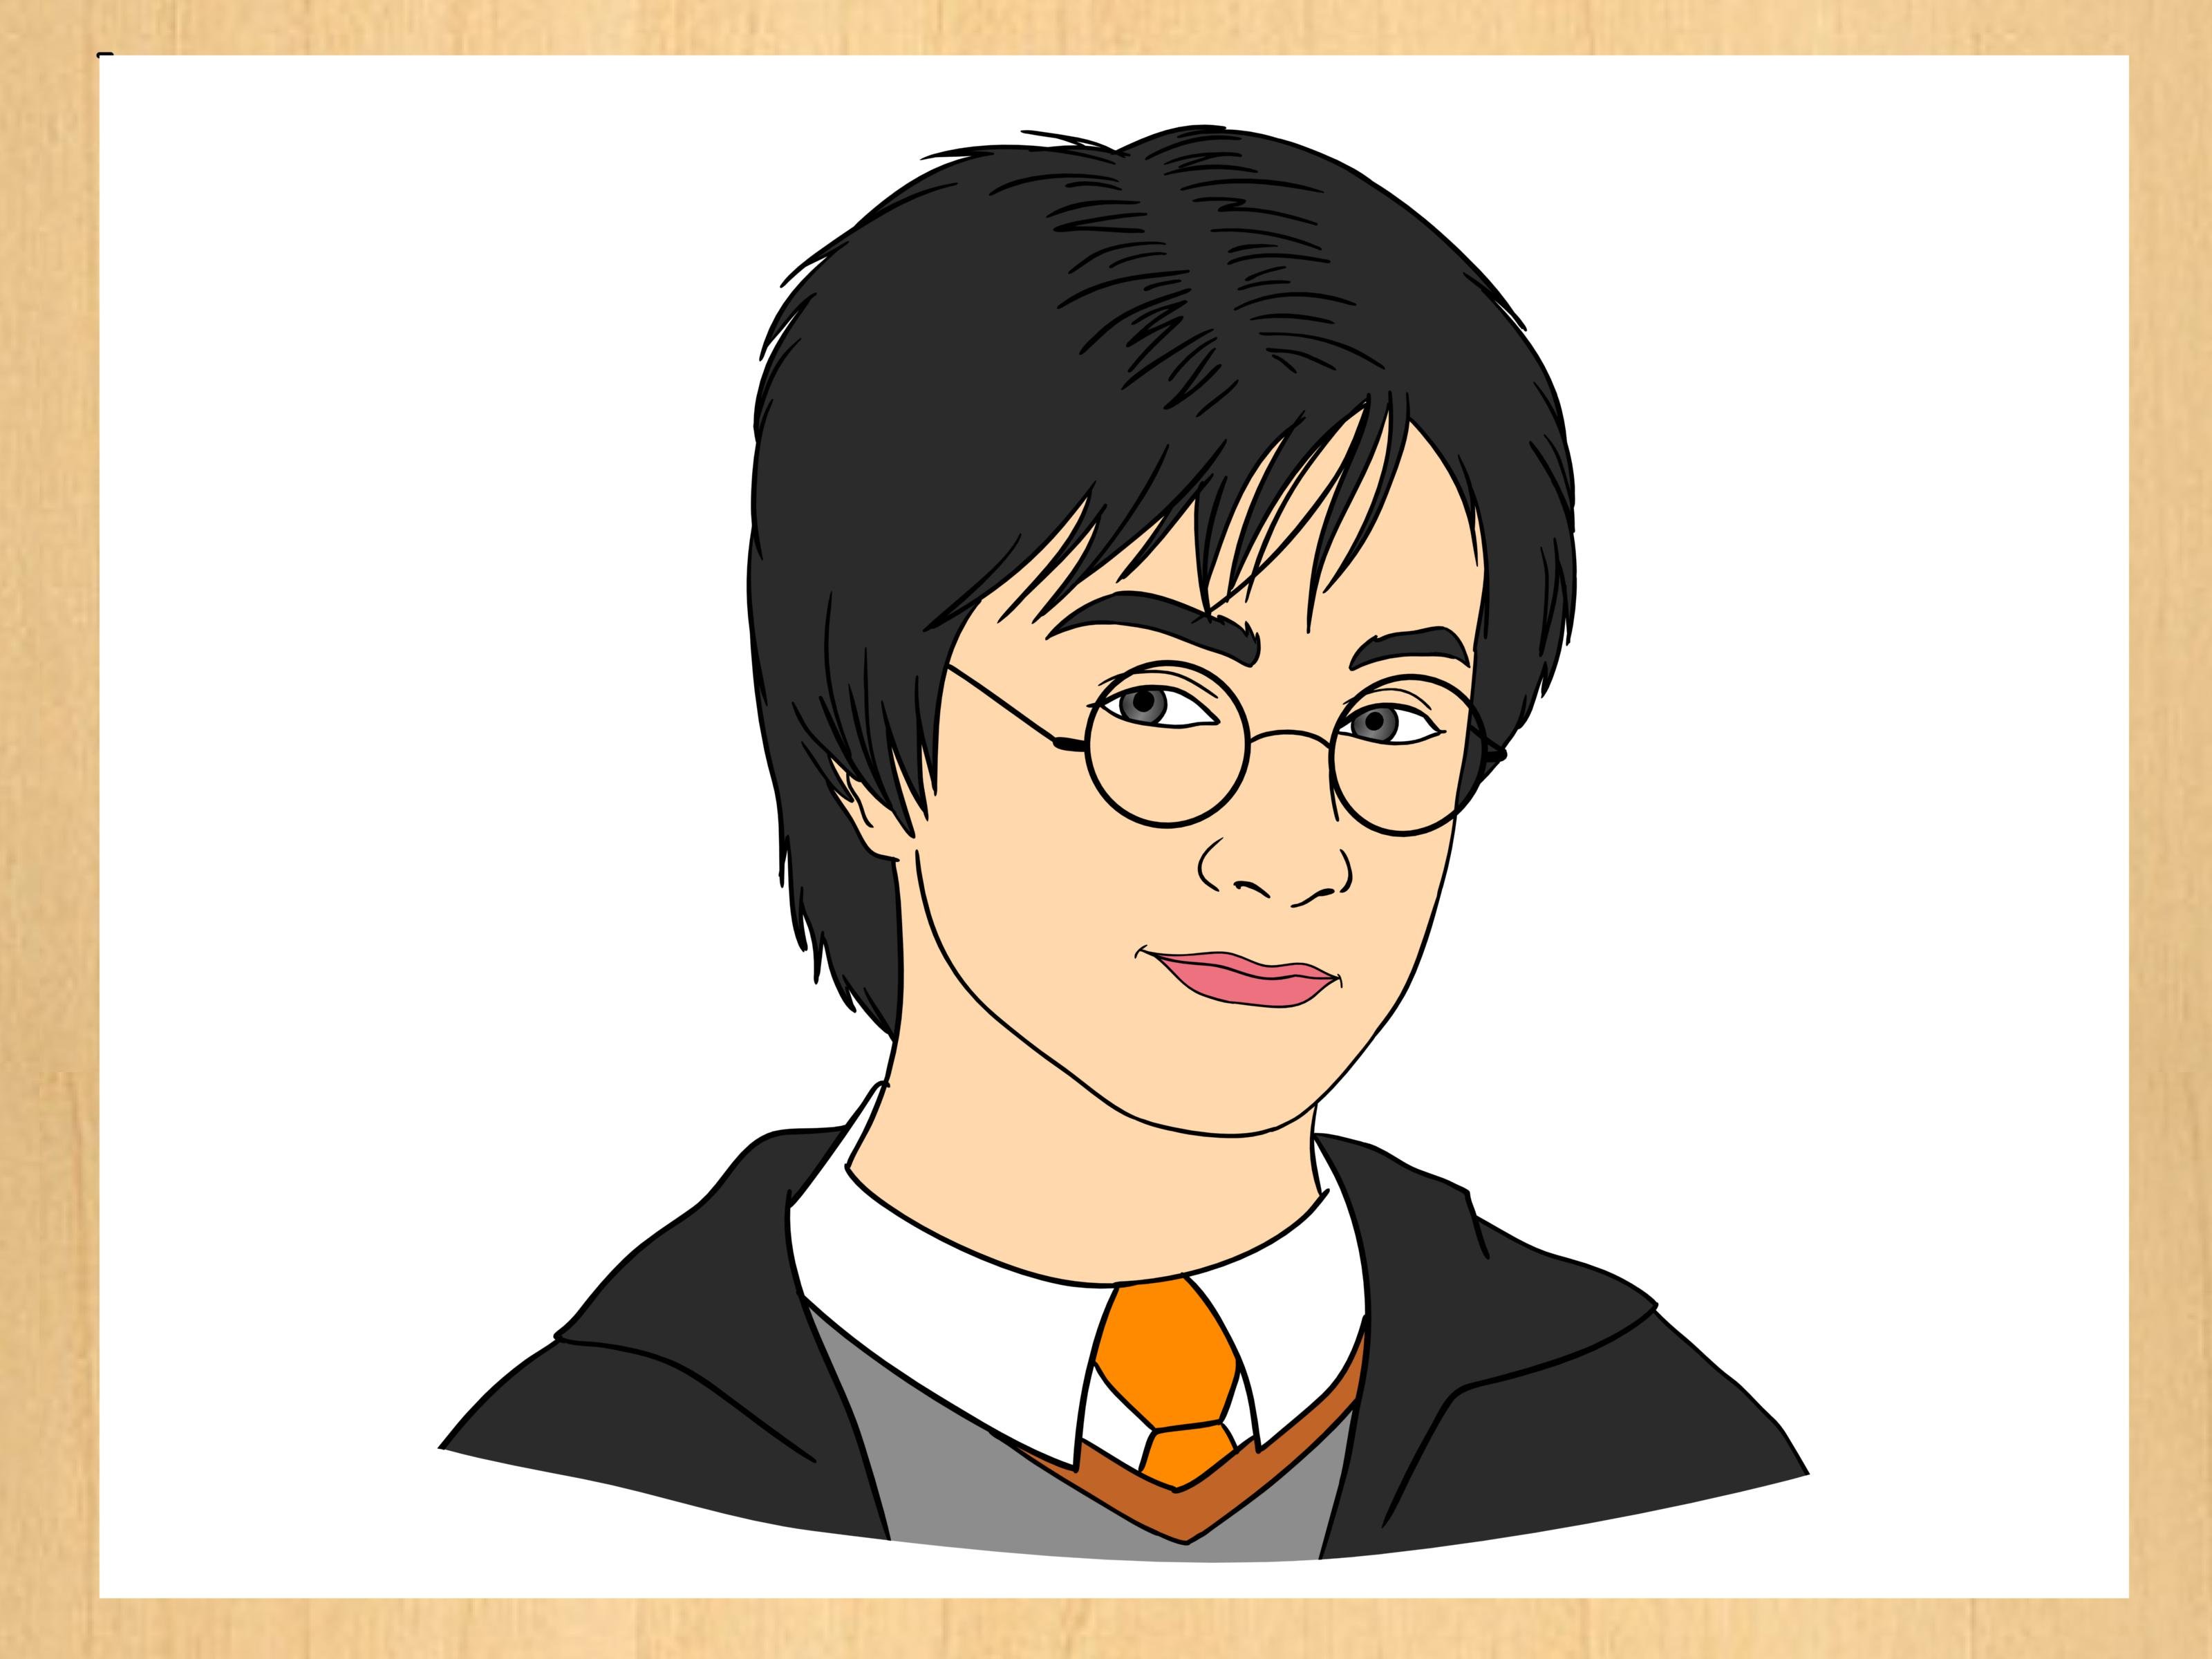 How To Draw Harry Potter 9 Steps With Pictures